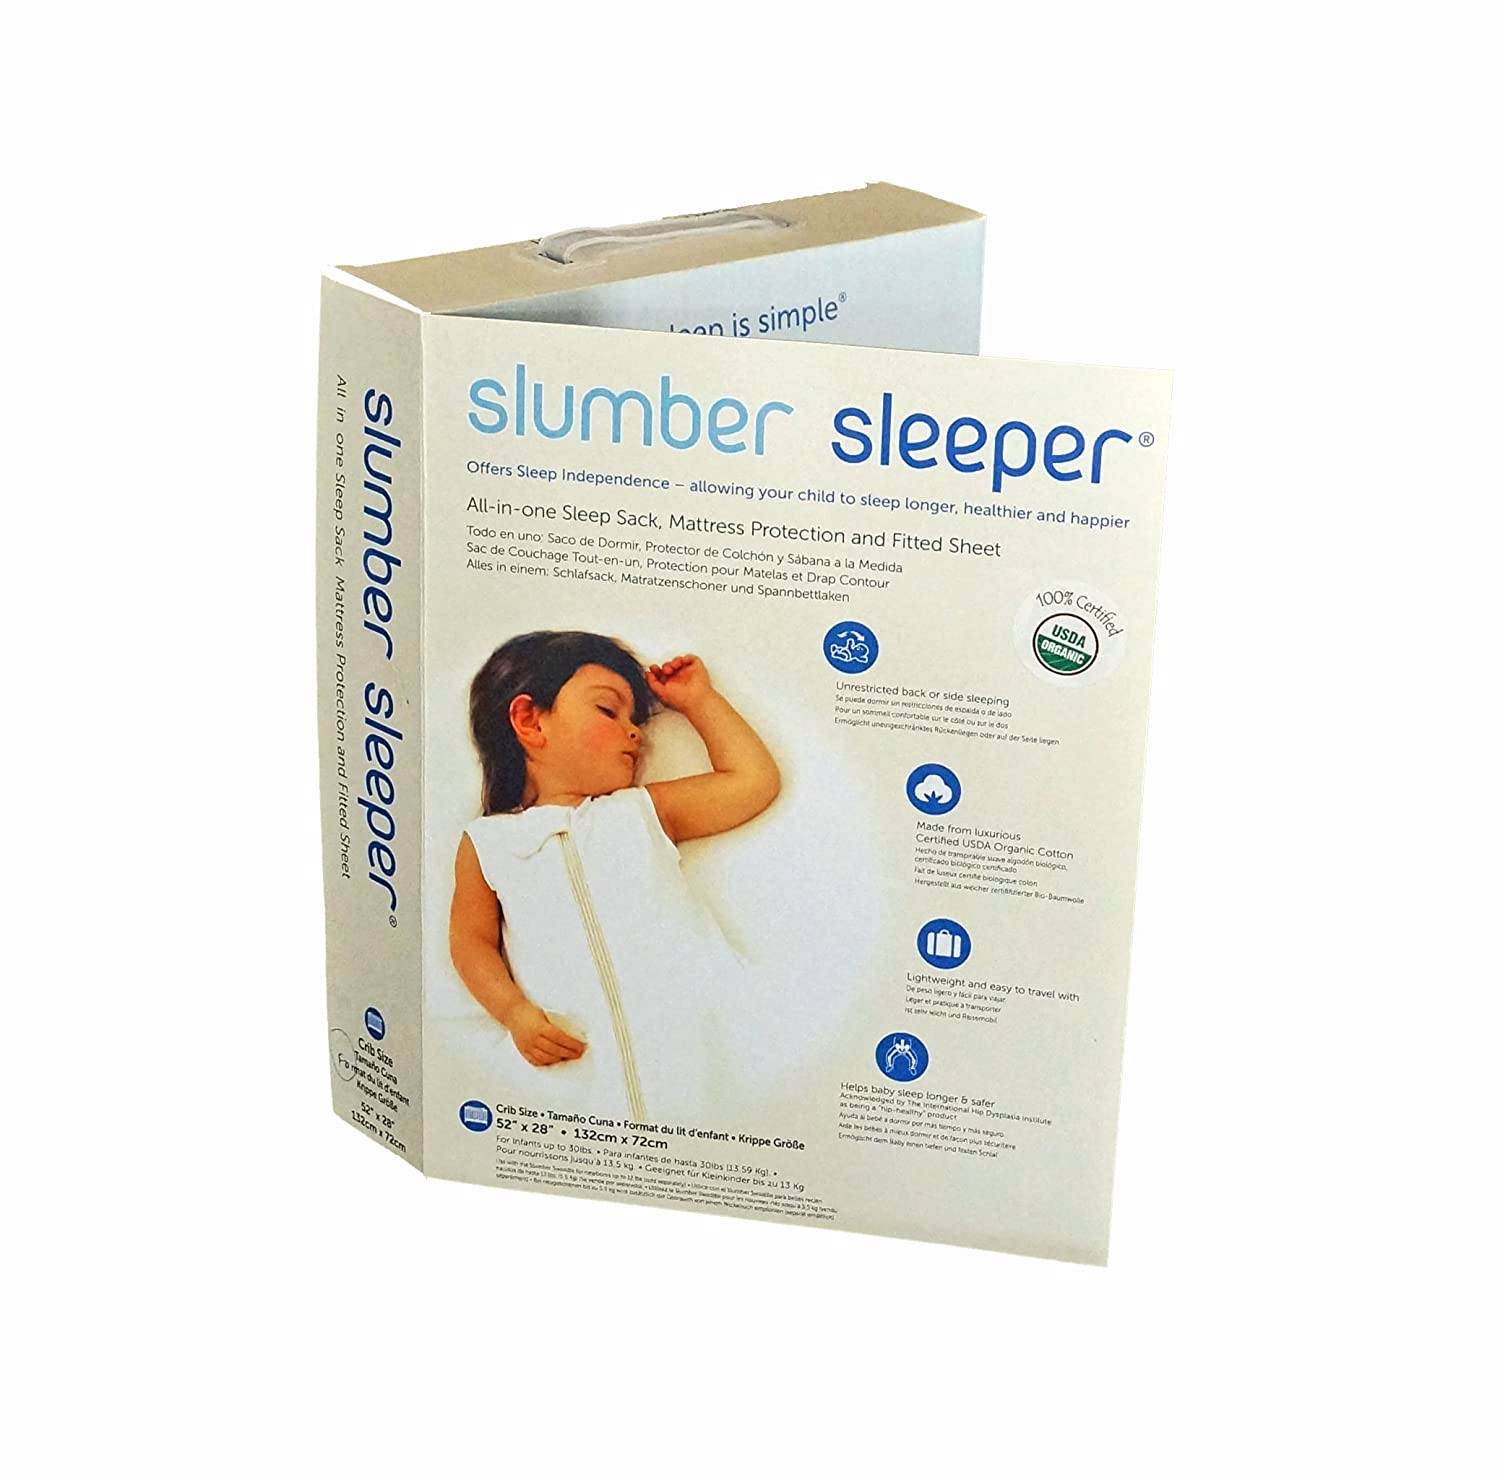 Amazon.com : Slumber Sleeper Twin Size in Organic Cotton : Crib Bedding Sets : Baby